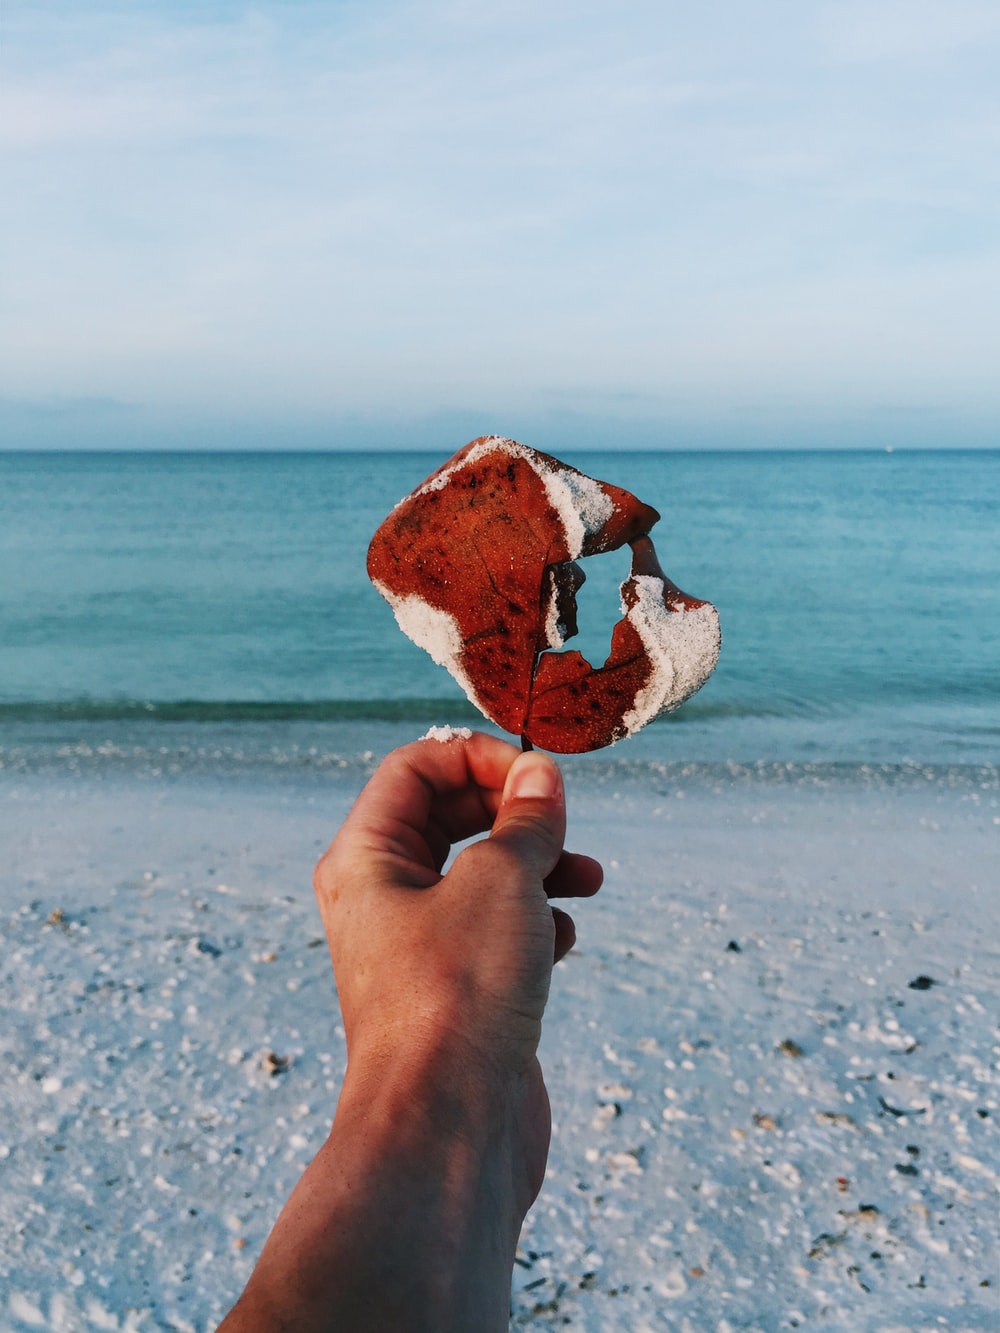 person holding brown and white leaf on seashore during daytime